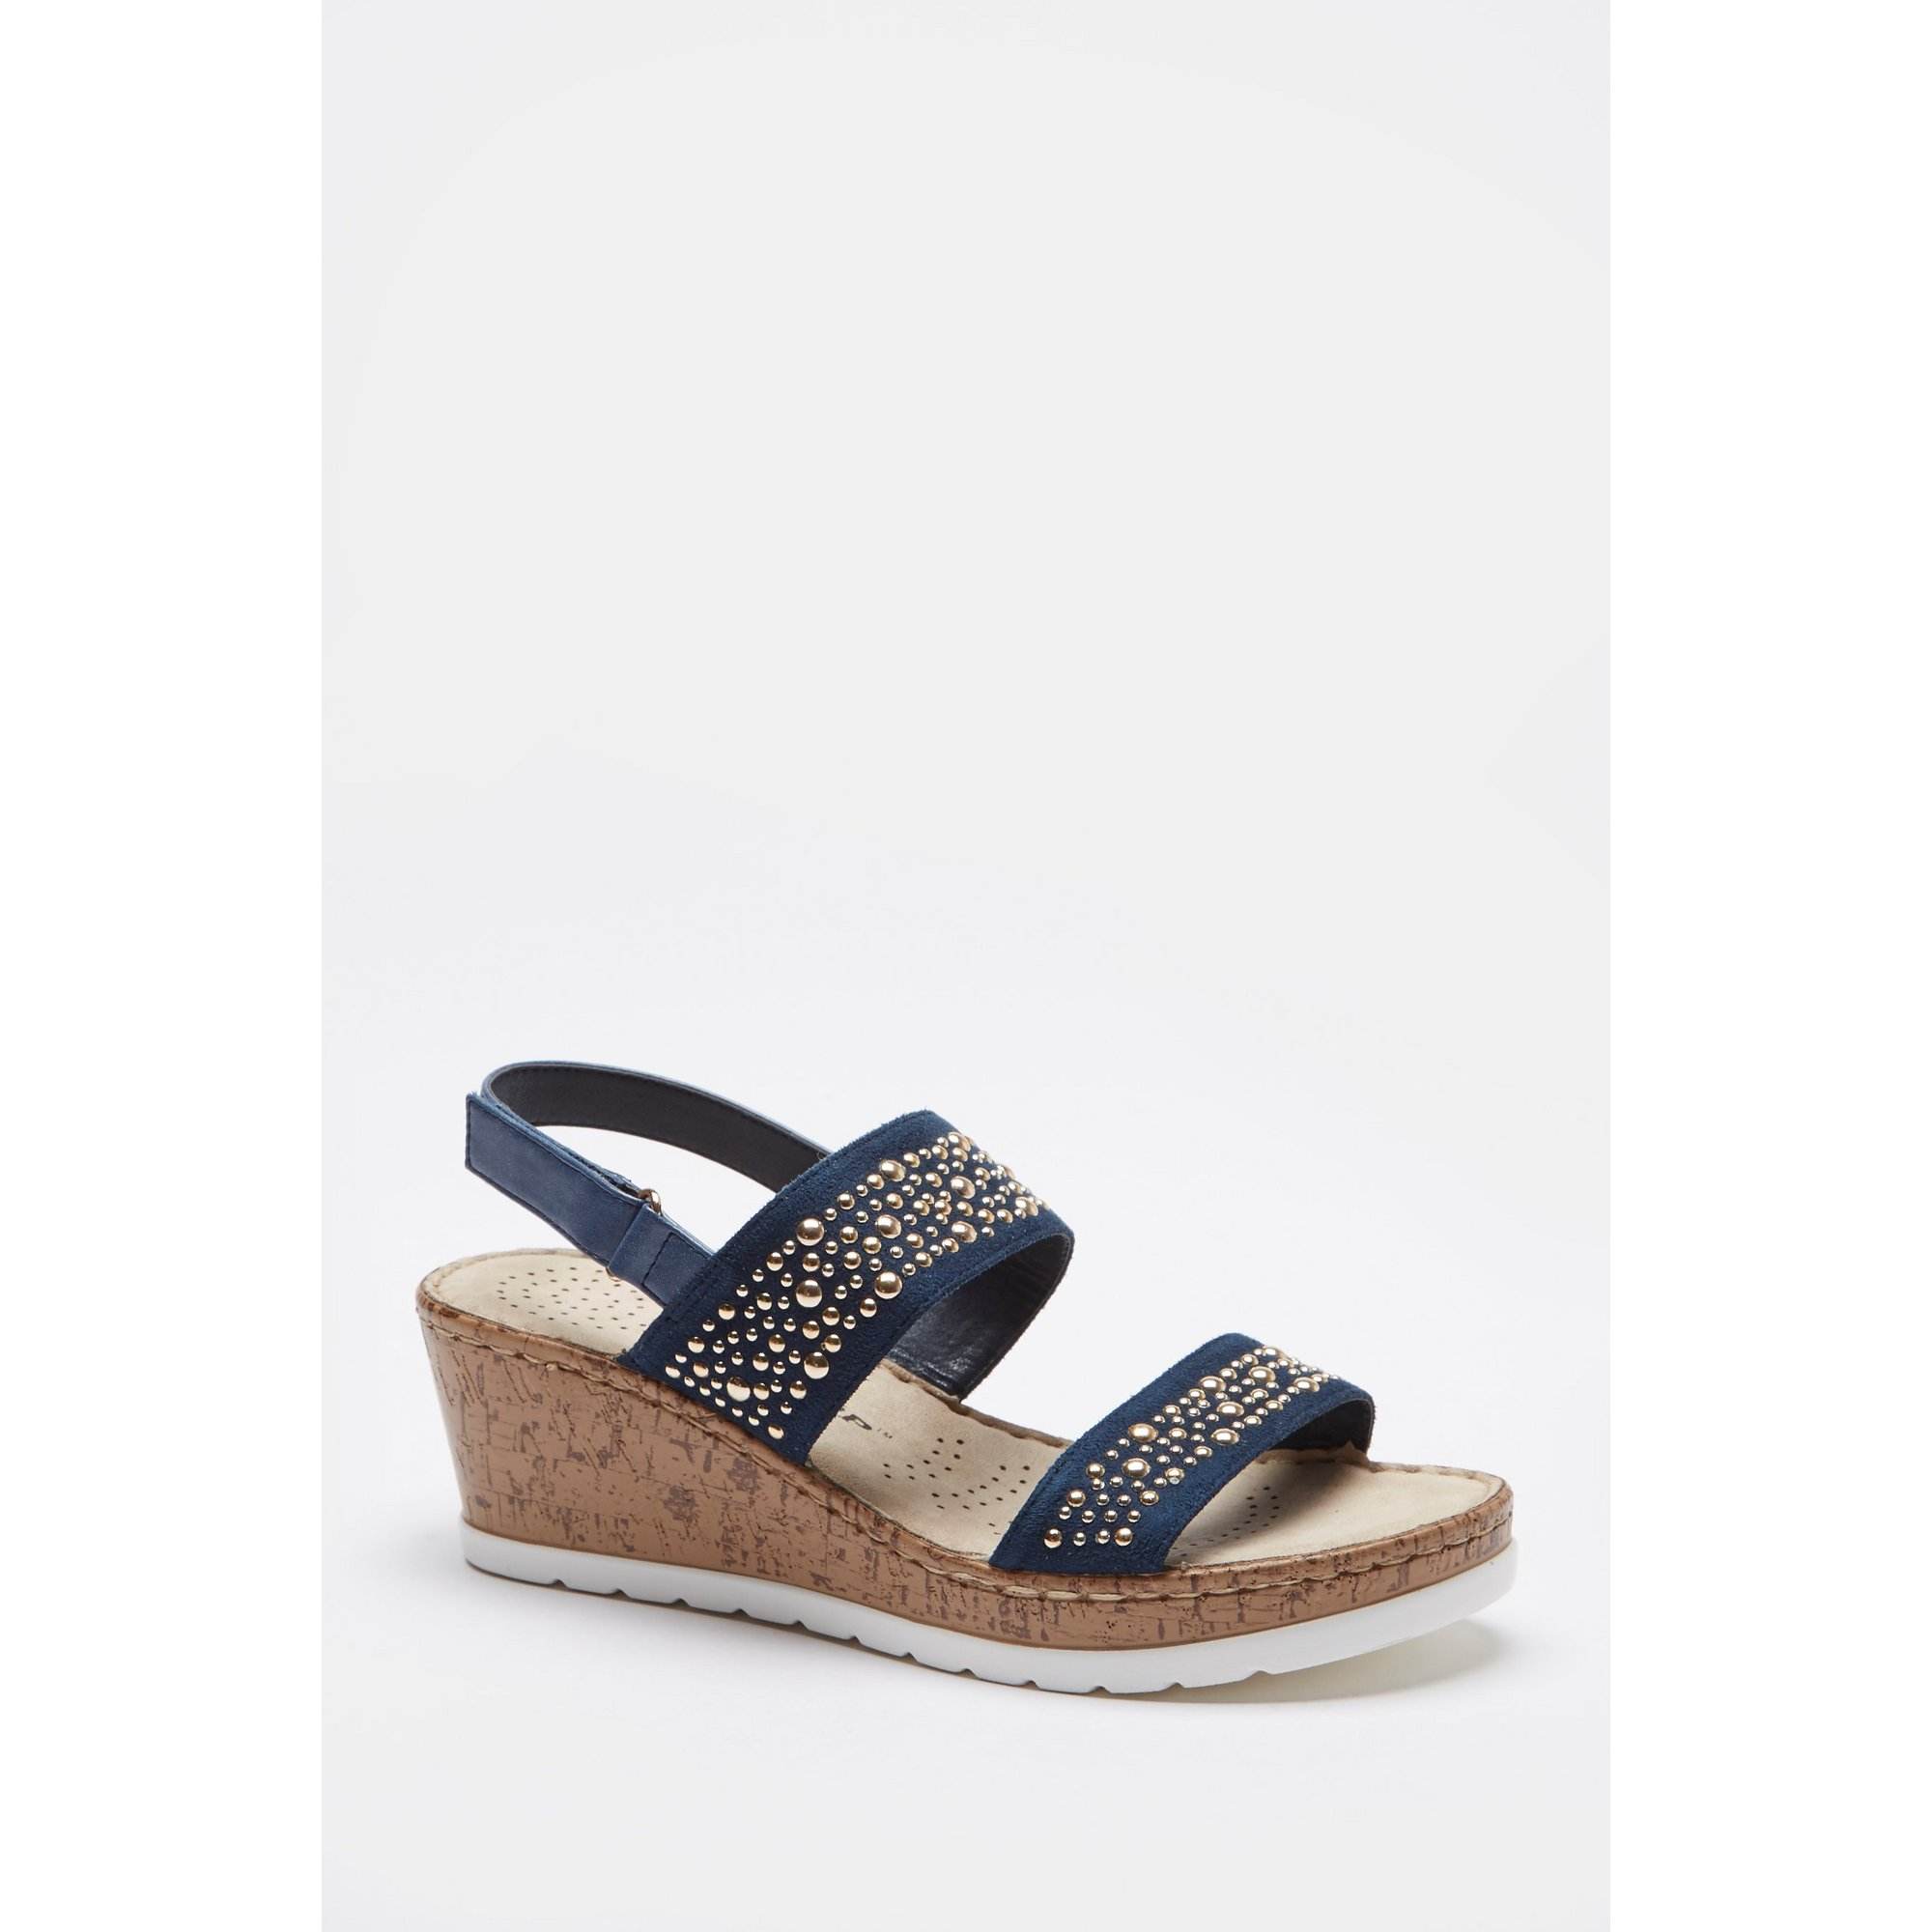 Image of Dunlop Diamante Wedge Sandals